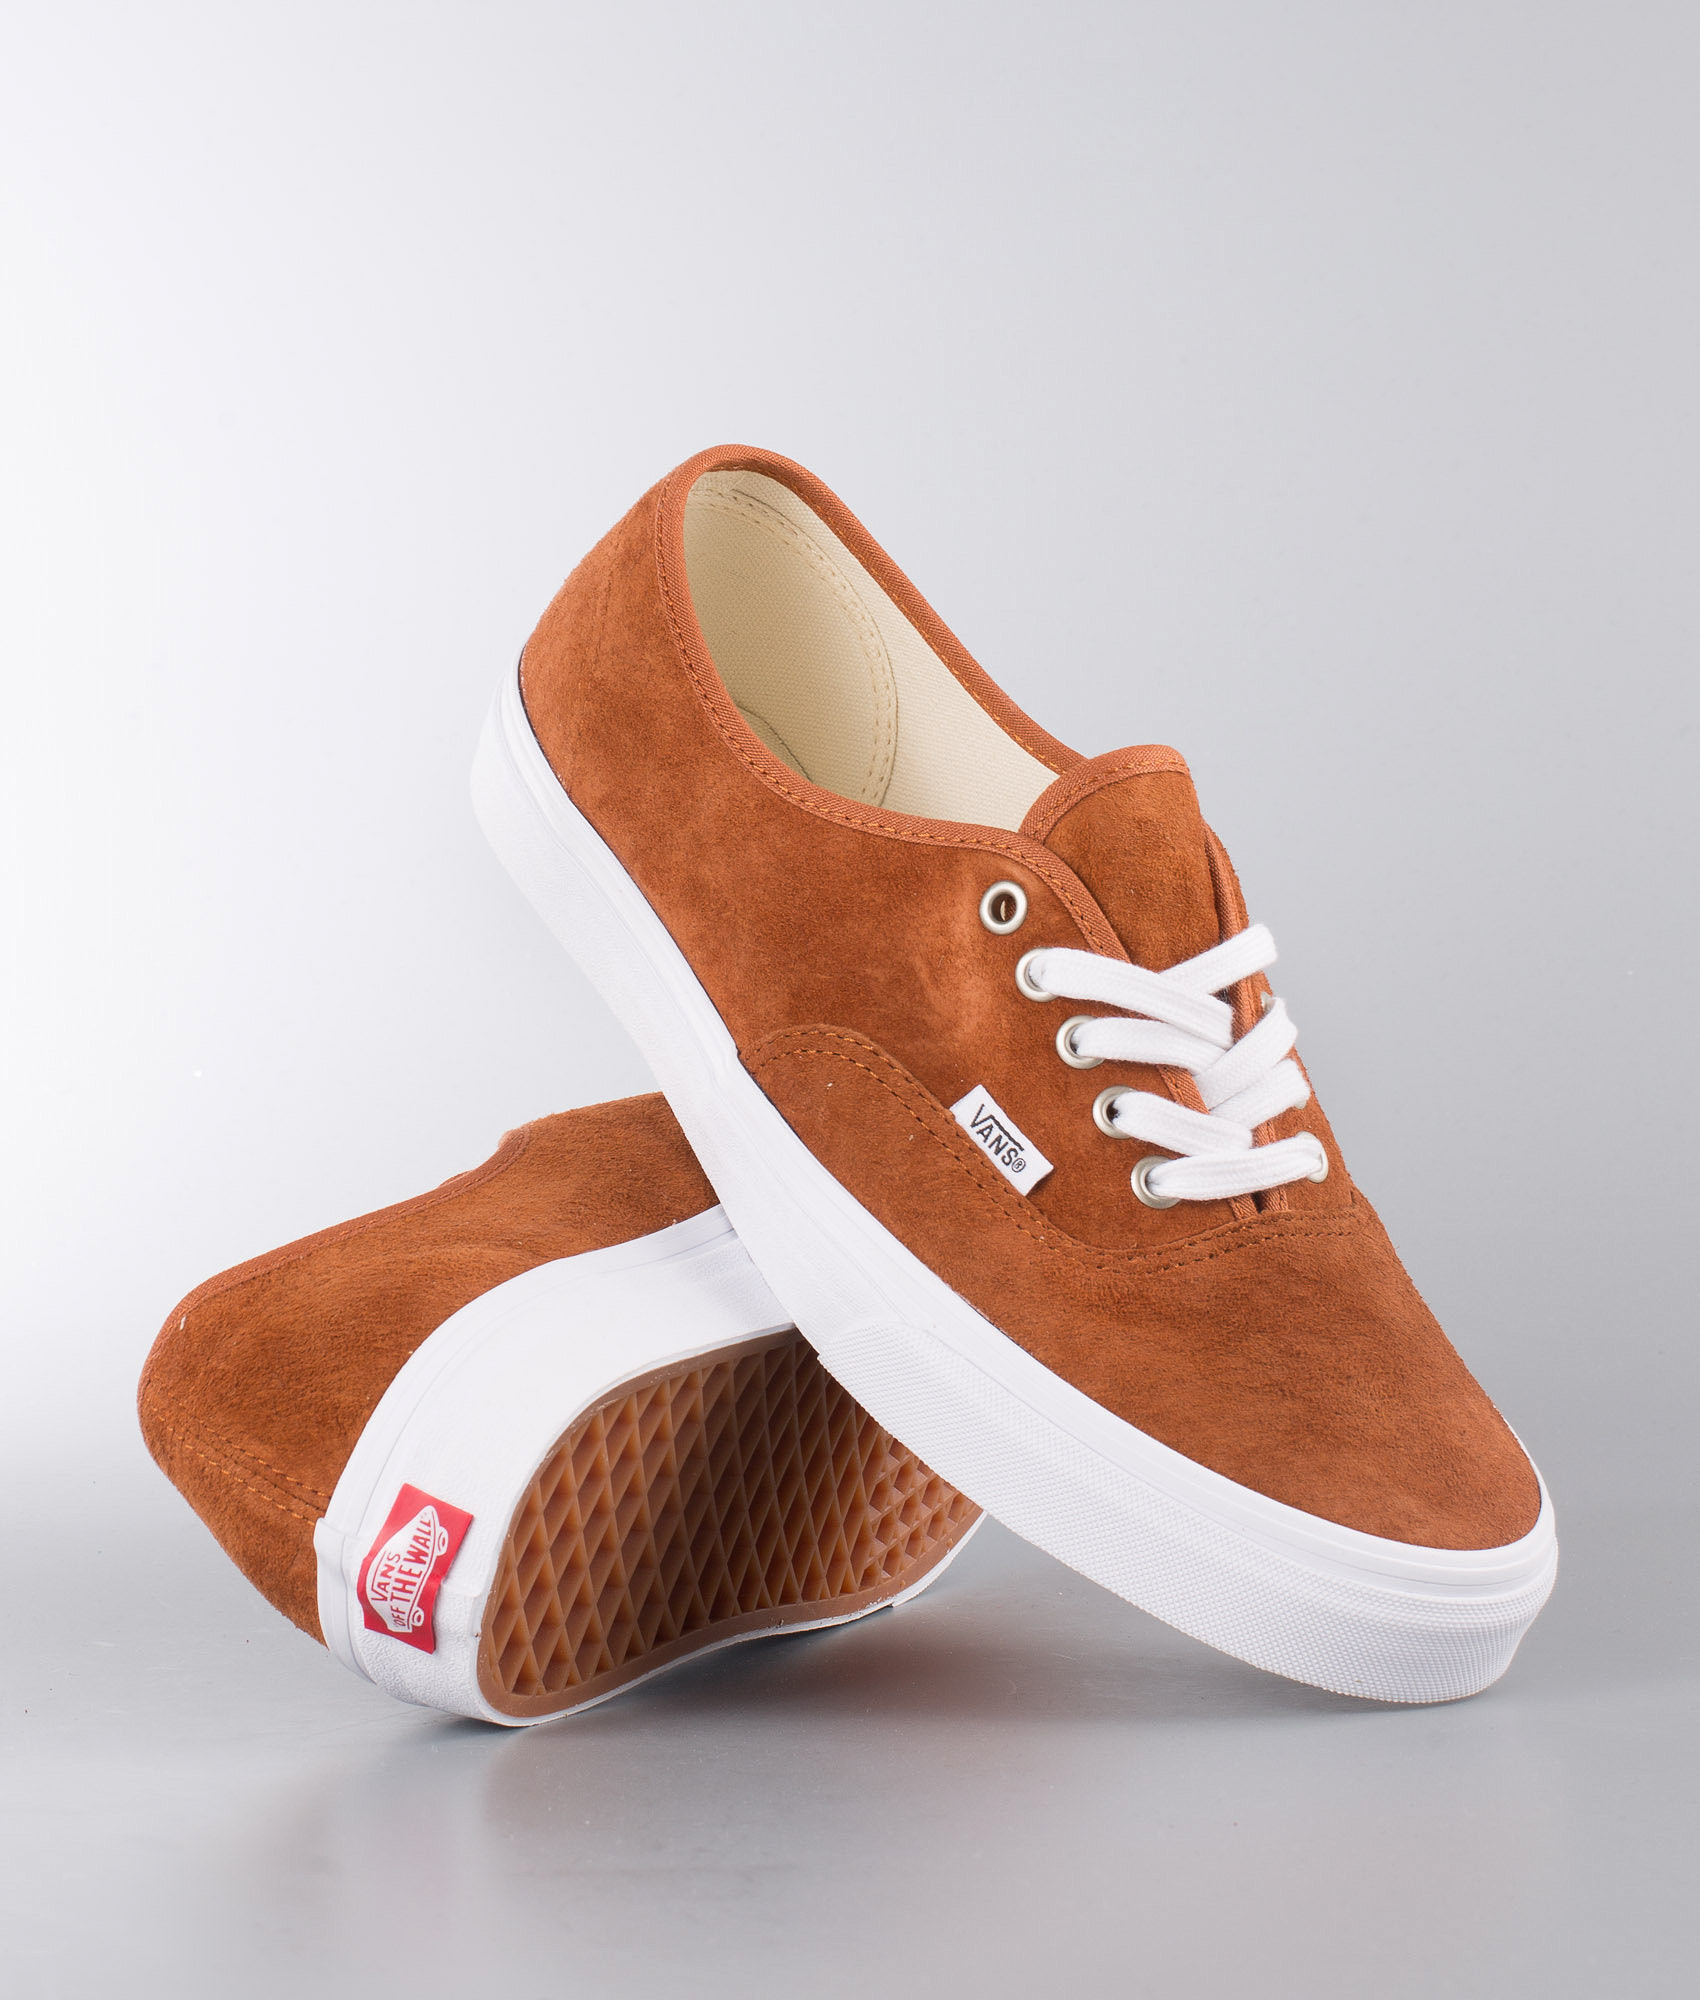 536a399bc6b Vans Authentic Shoes Orange. (Pig Suede) Leather Brown True White